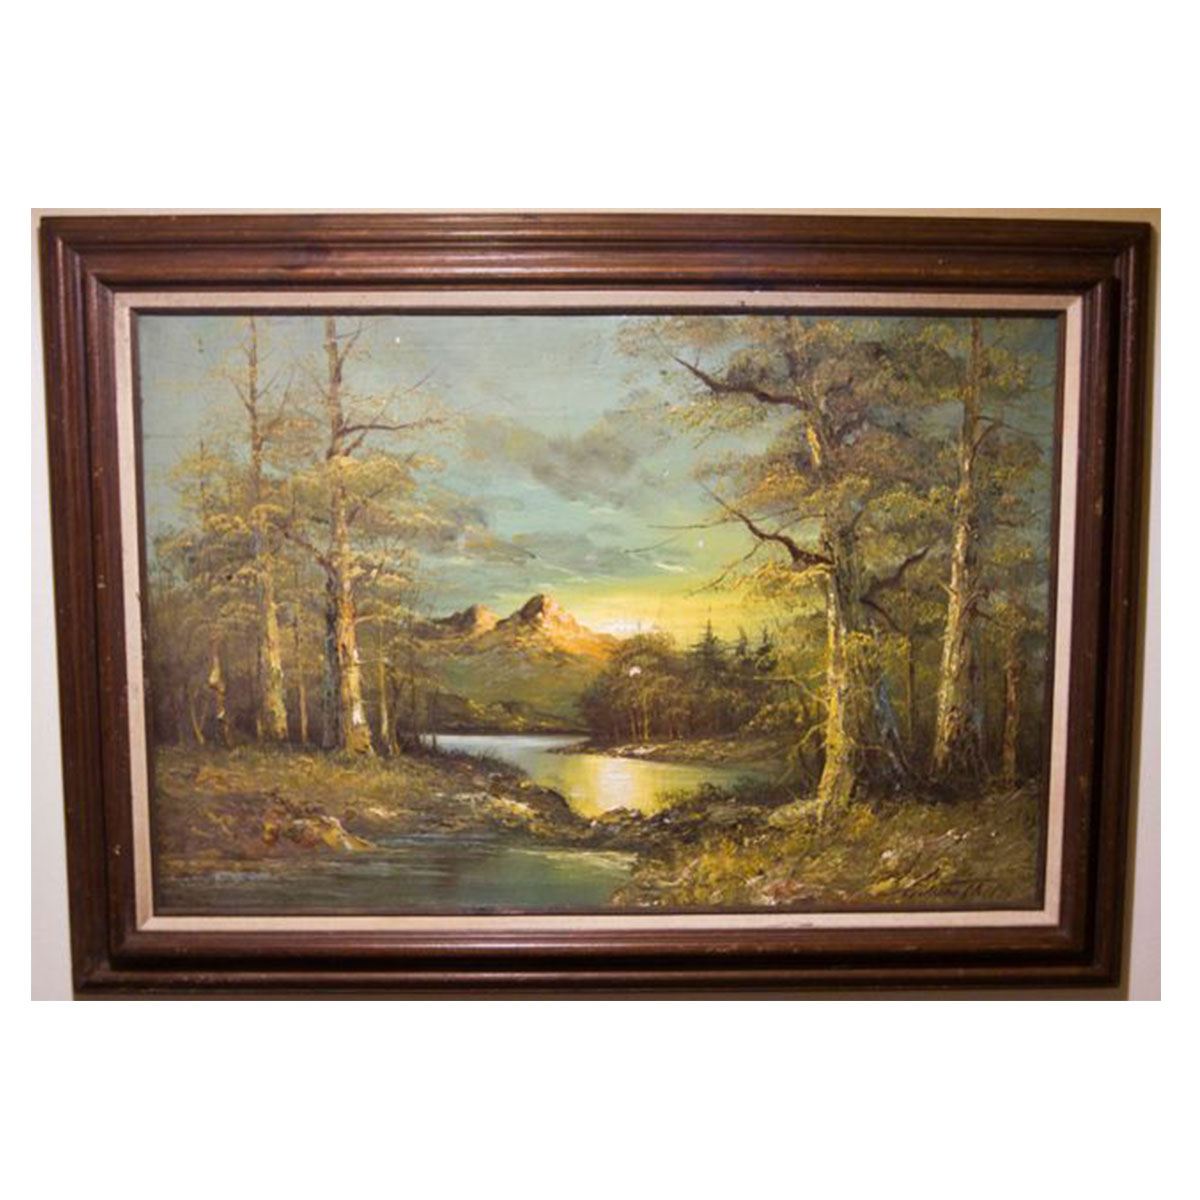 Vintage Mountain, Forest and River Painting